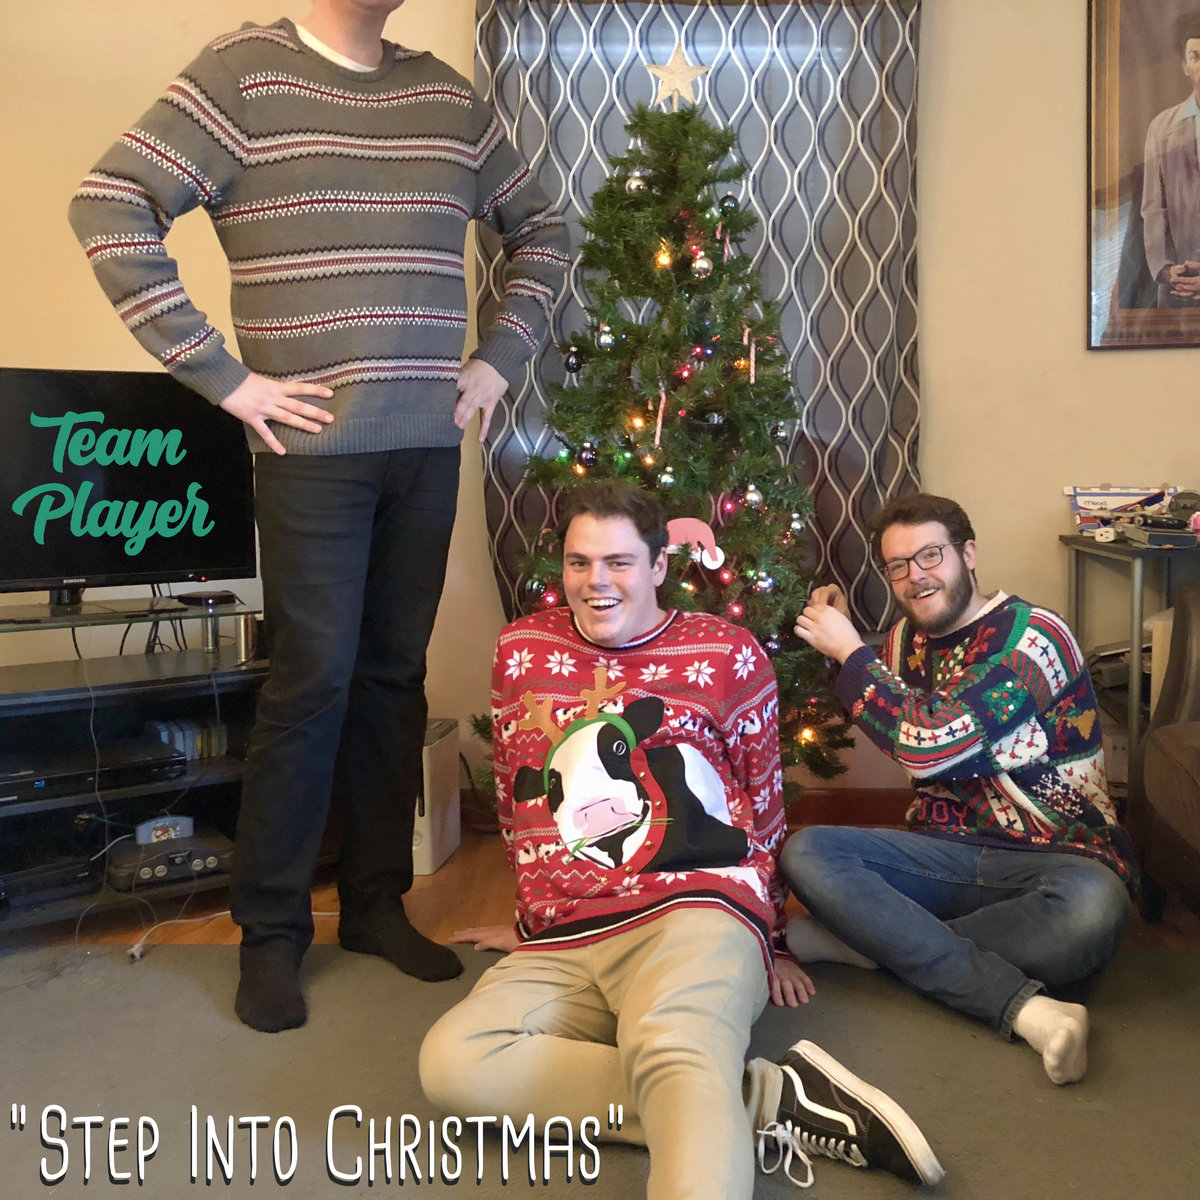 Step Into Christmas.Step Into Christmas Team Player